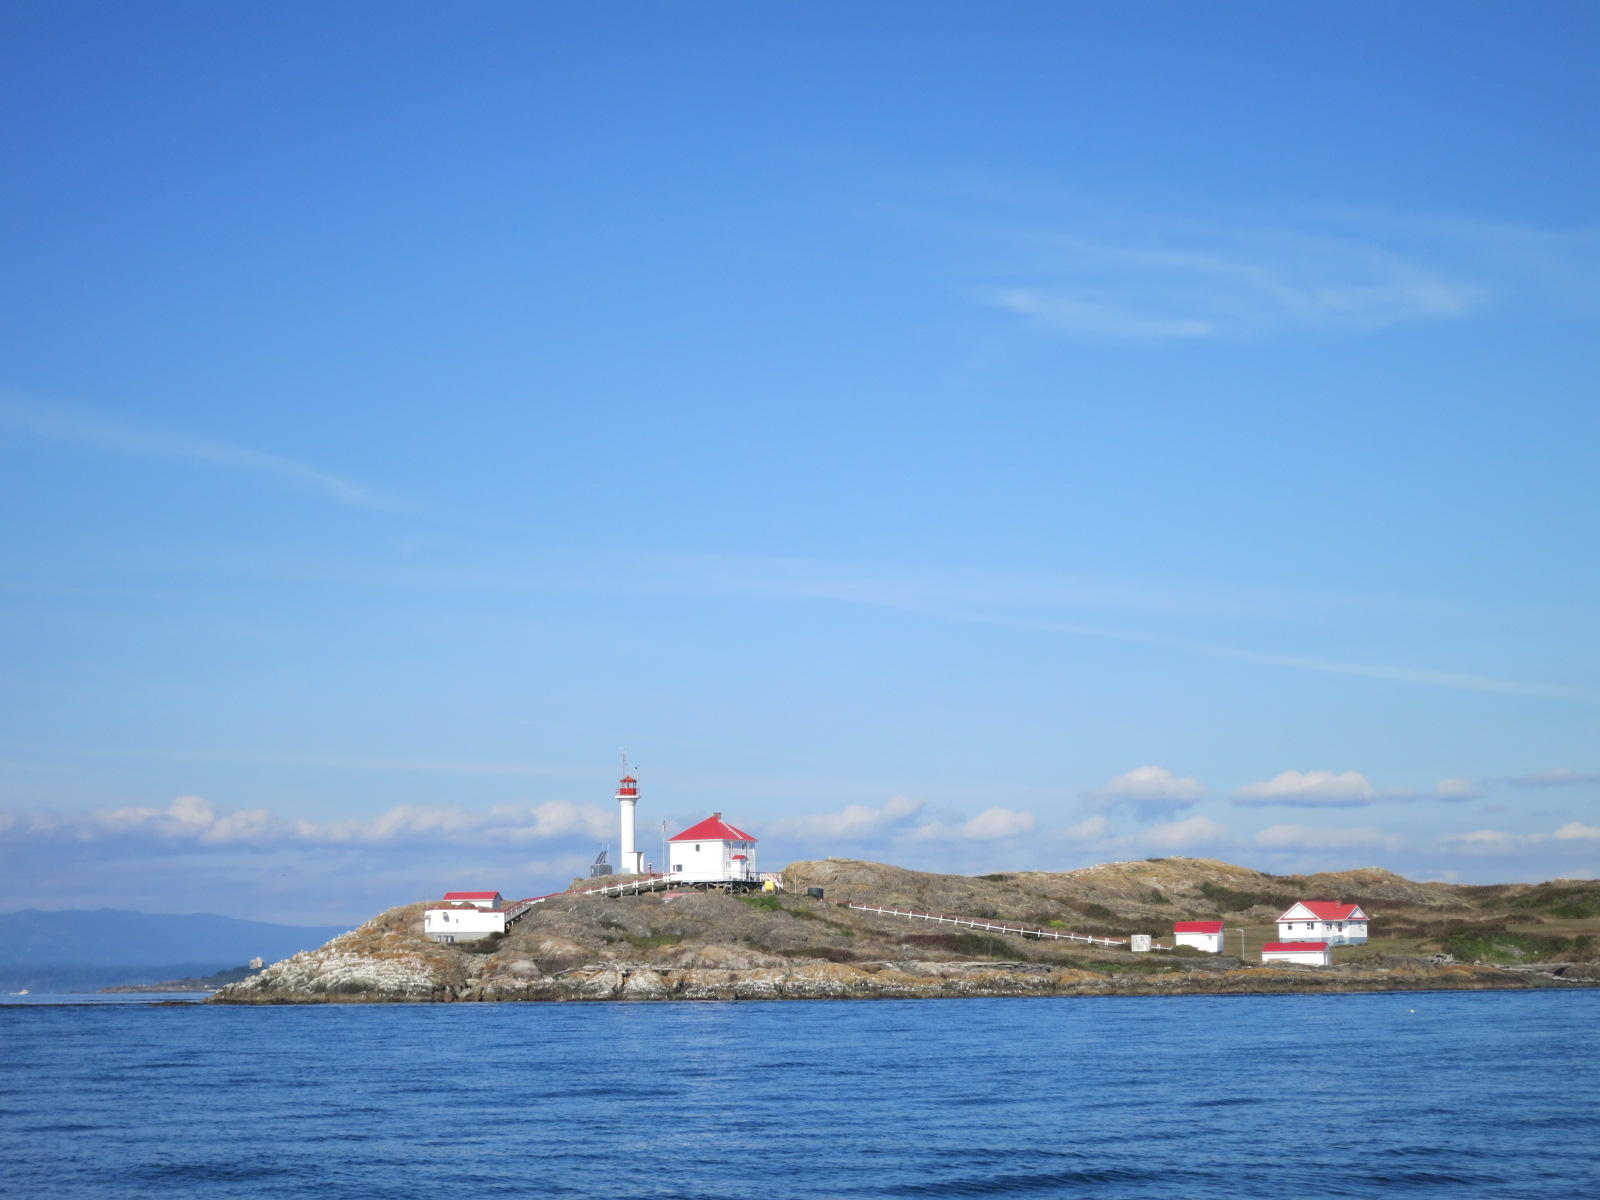 A light house leading the way into Victoria